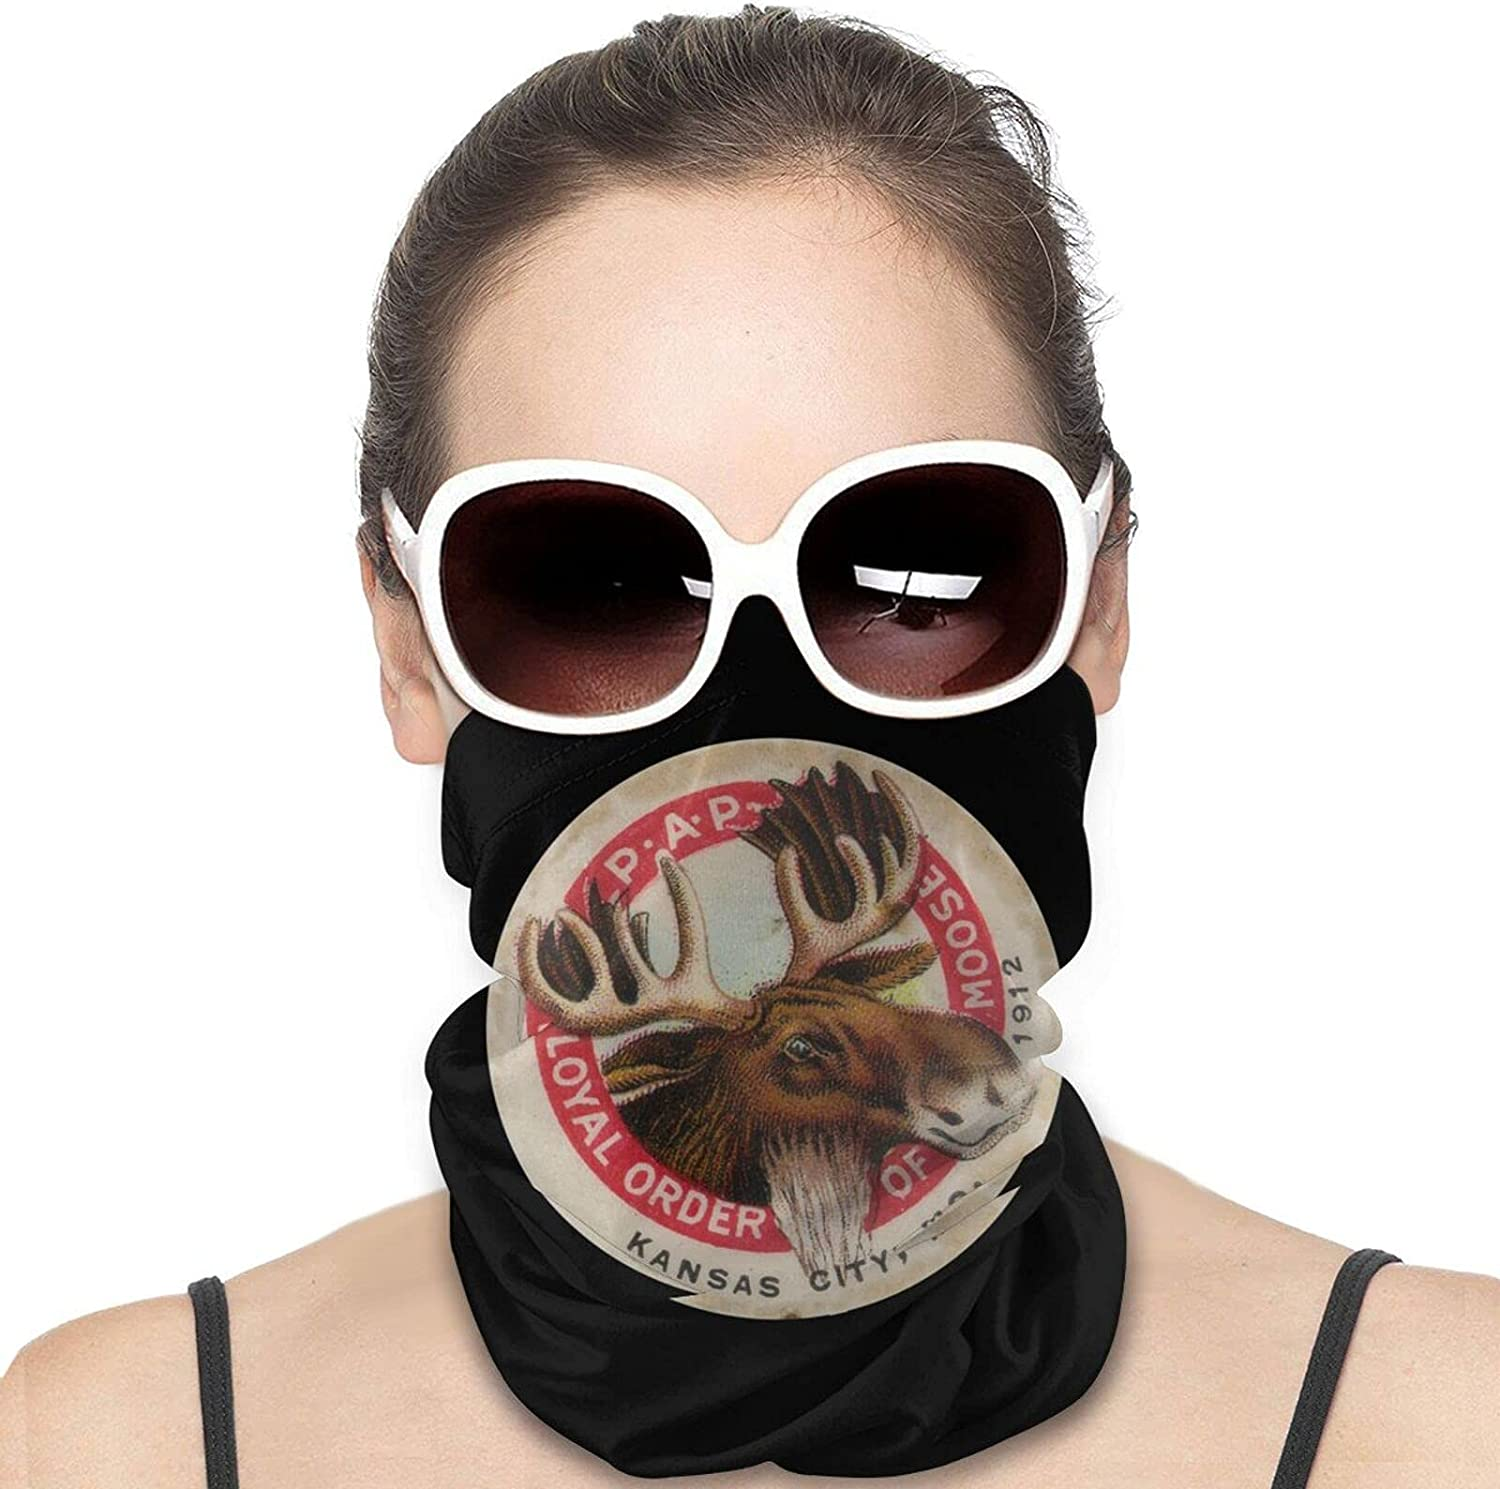 Loyal Order of Moose Round Neck Gaiter Bandnas Face Cover Uv Protection Prevent bask in Ice Scarf Headbands Perfect for Motorcycle Cycling Running Festival Raves Outdoors